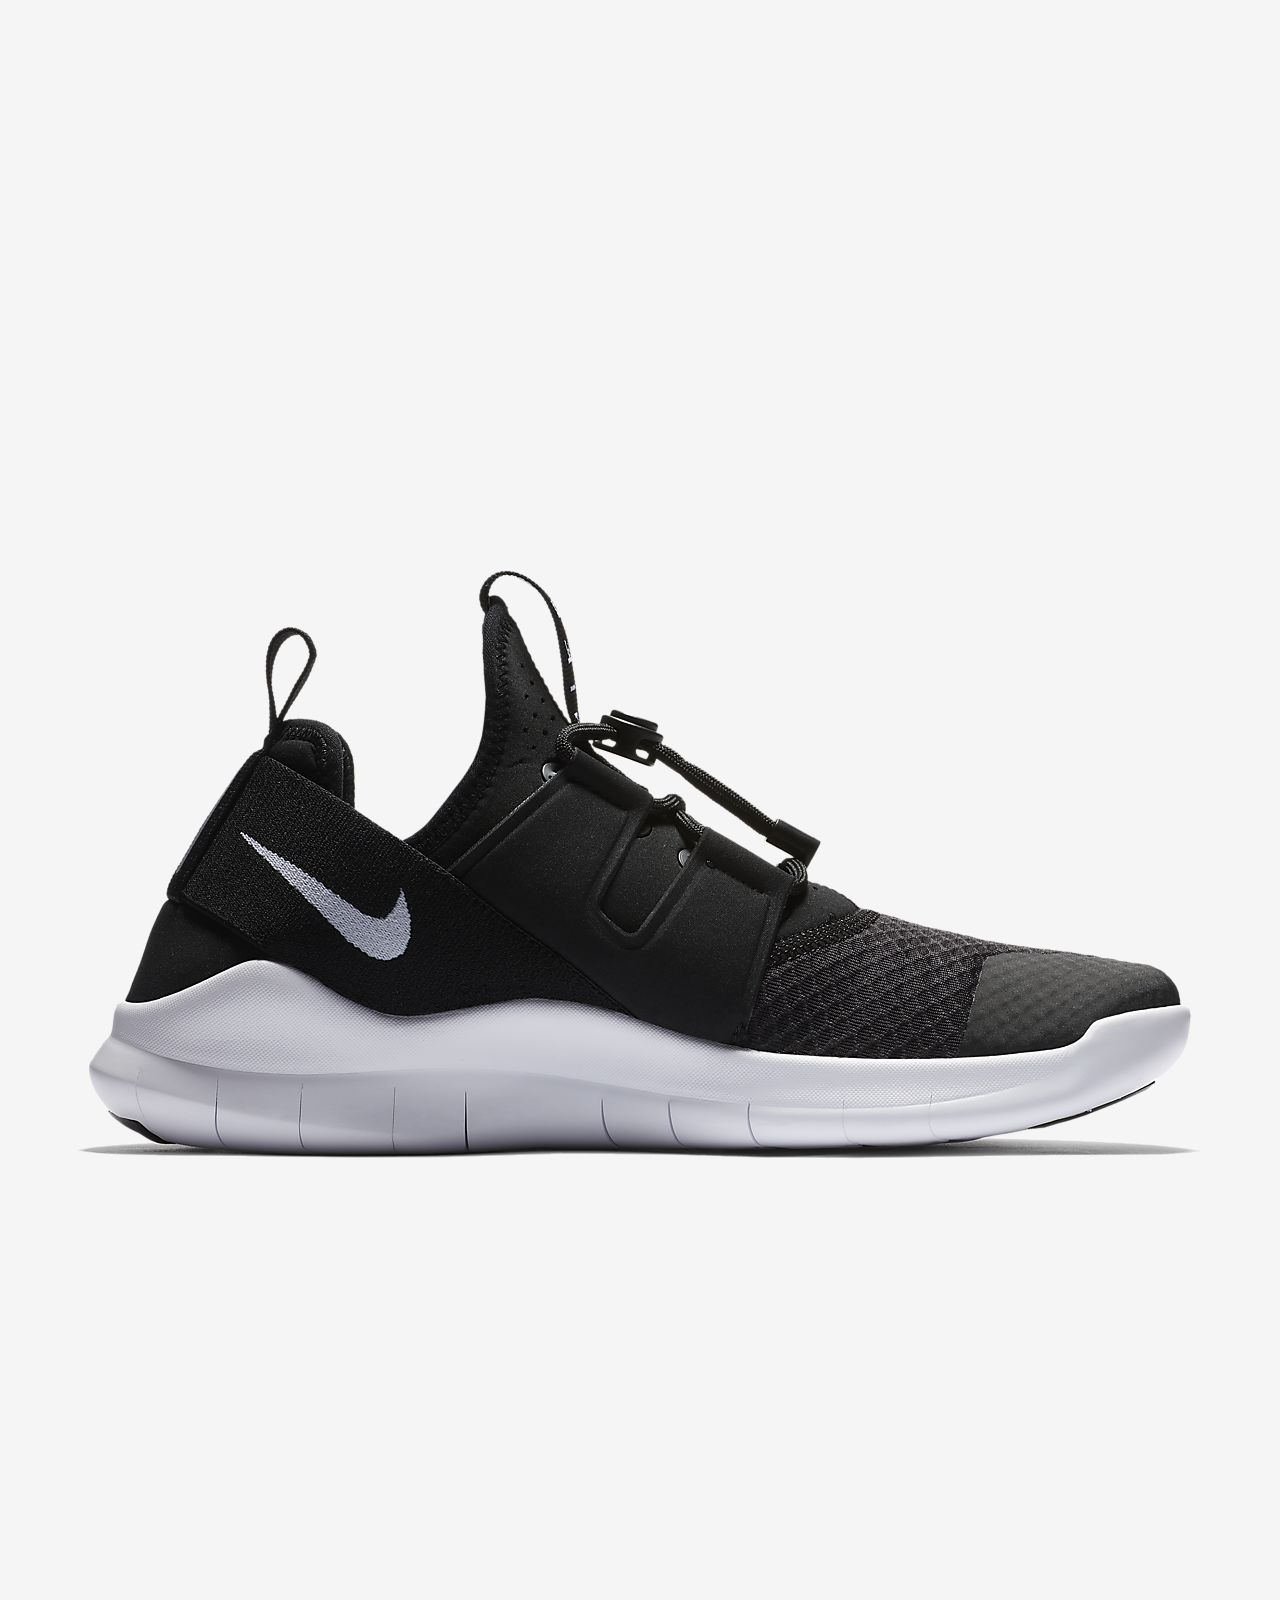 7a68cb523beb2 Low Resolution Nike Free RN Commuter 2018 Men s Running Shoe Nike Free RN  Commuter 2018 Men s Running Shoe